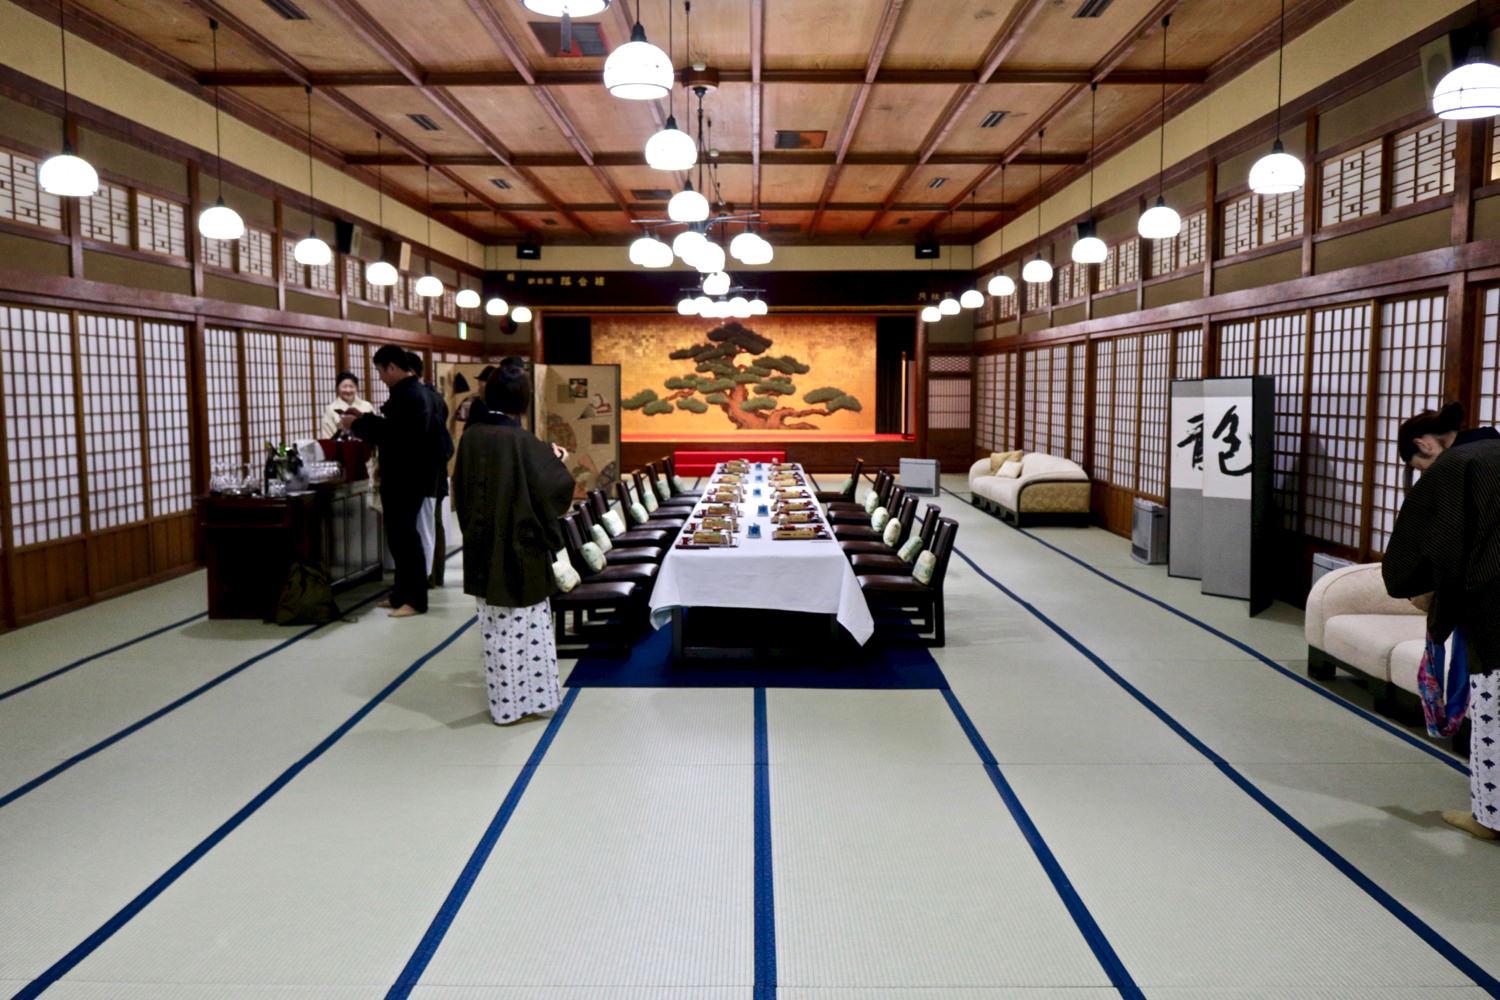 A banquet hall with 108 tatami mats!